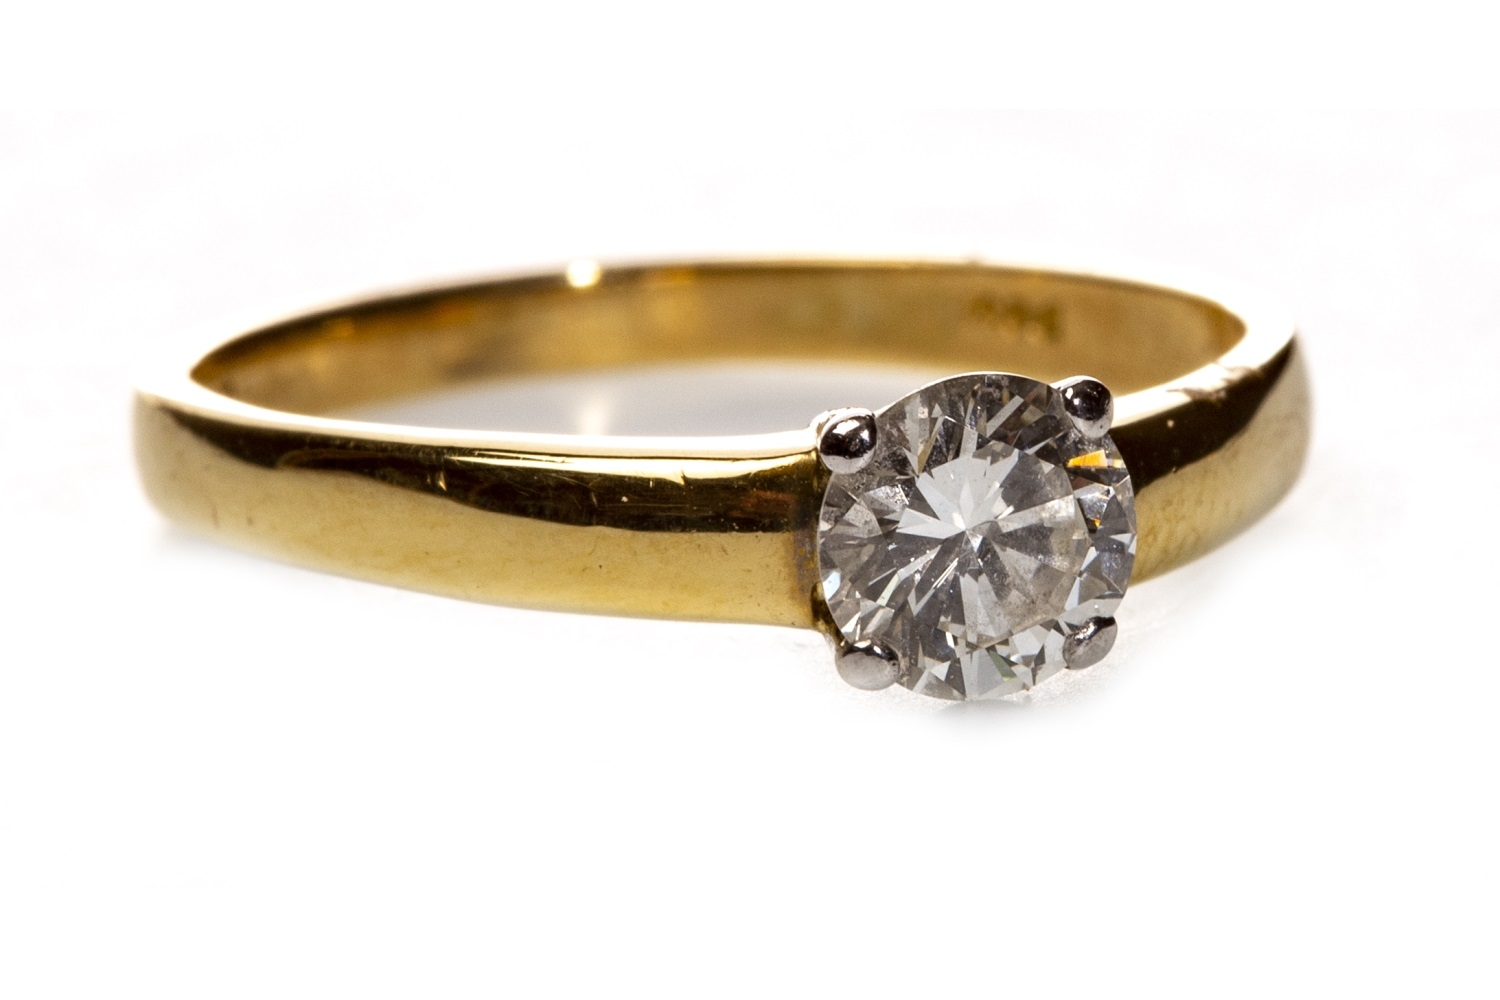 Lot 70 - A DIAMOND SOLITAIRE RING